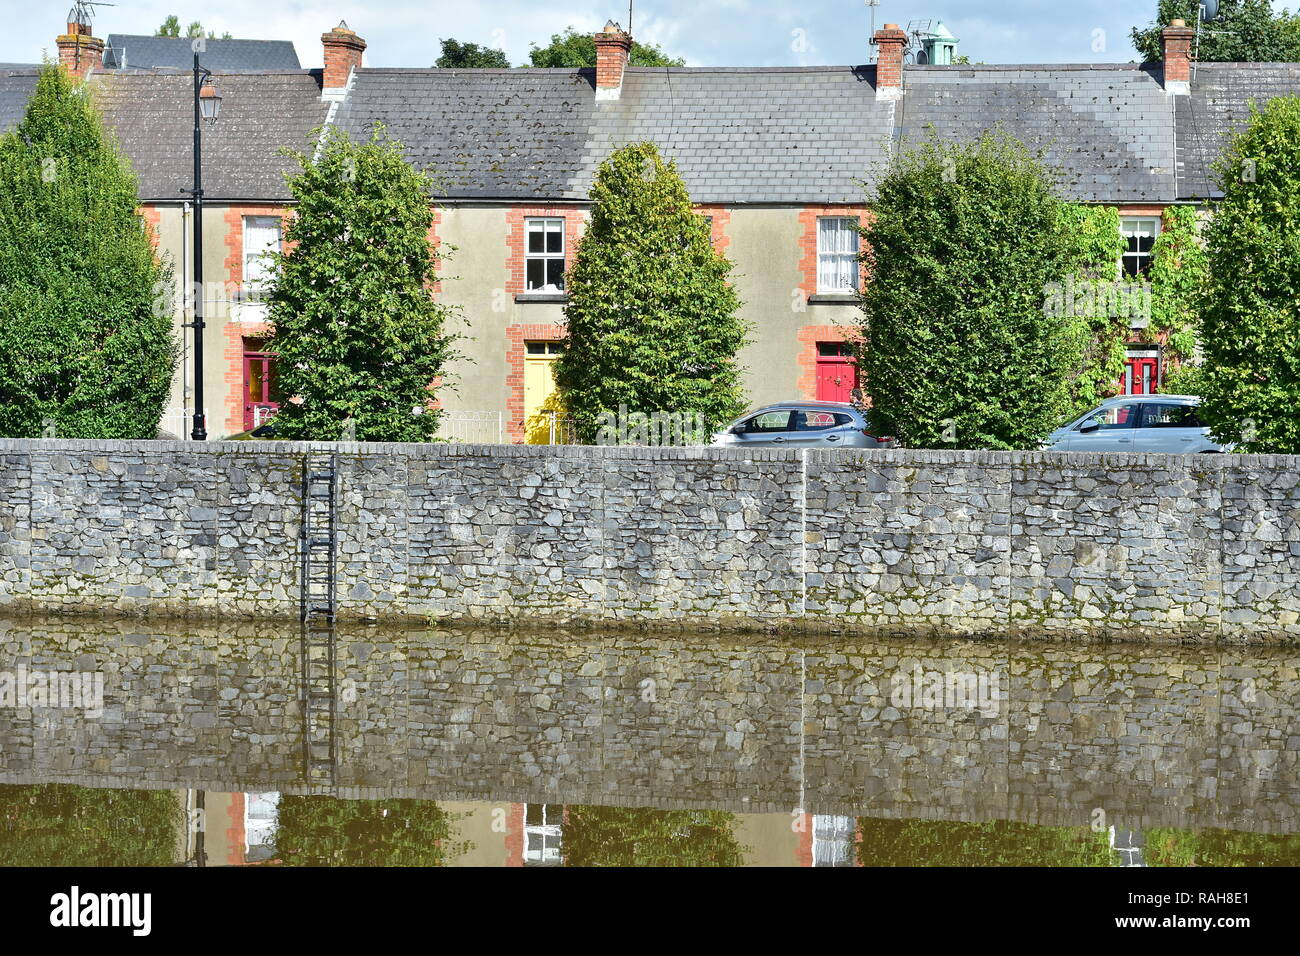 Row of typical narrow townhouses behind stone wall on bank of river Nore in Kilkenny. - Stock Image